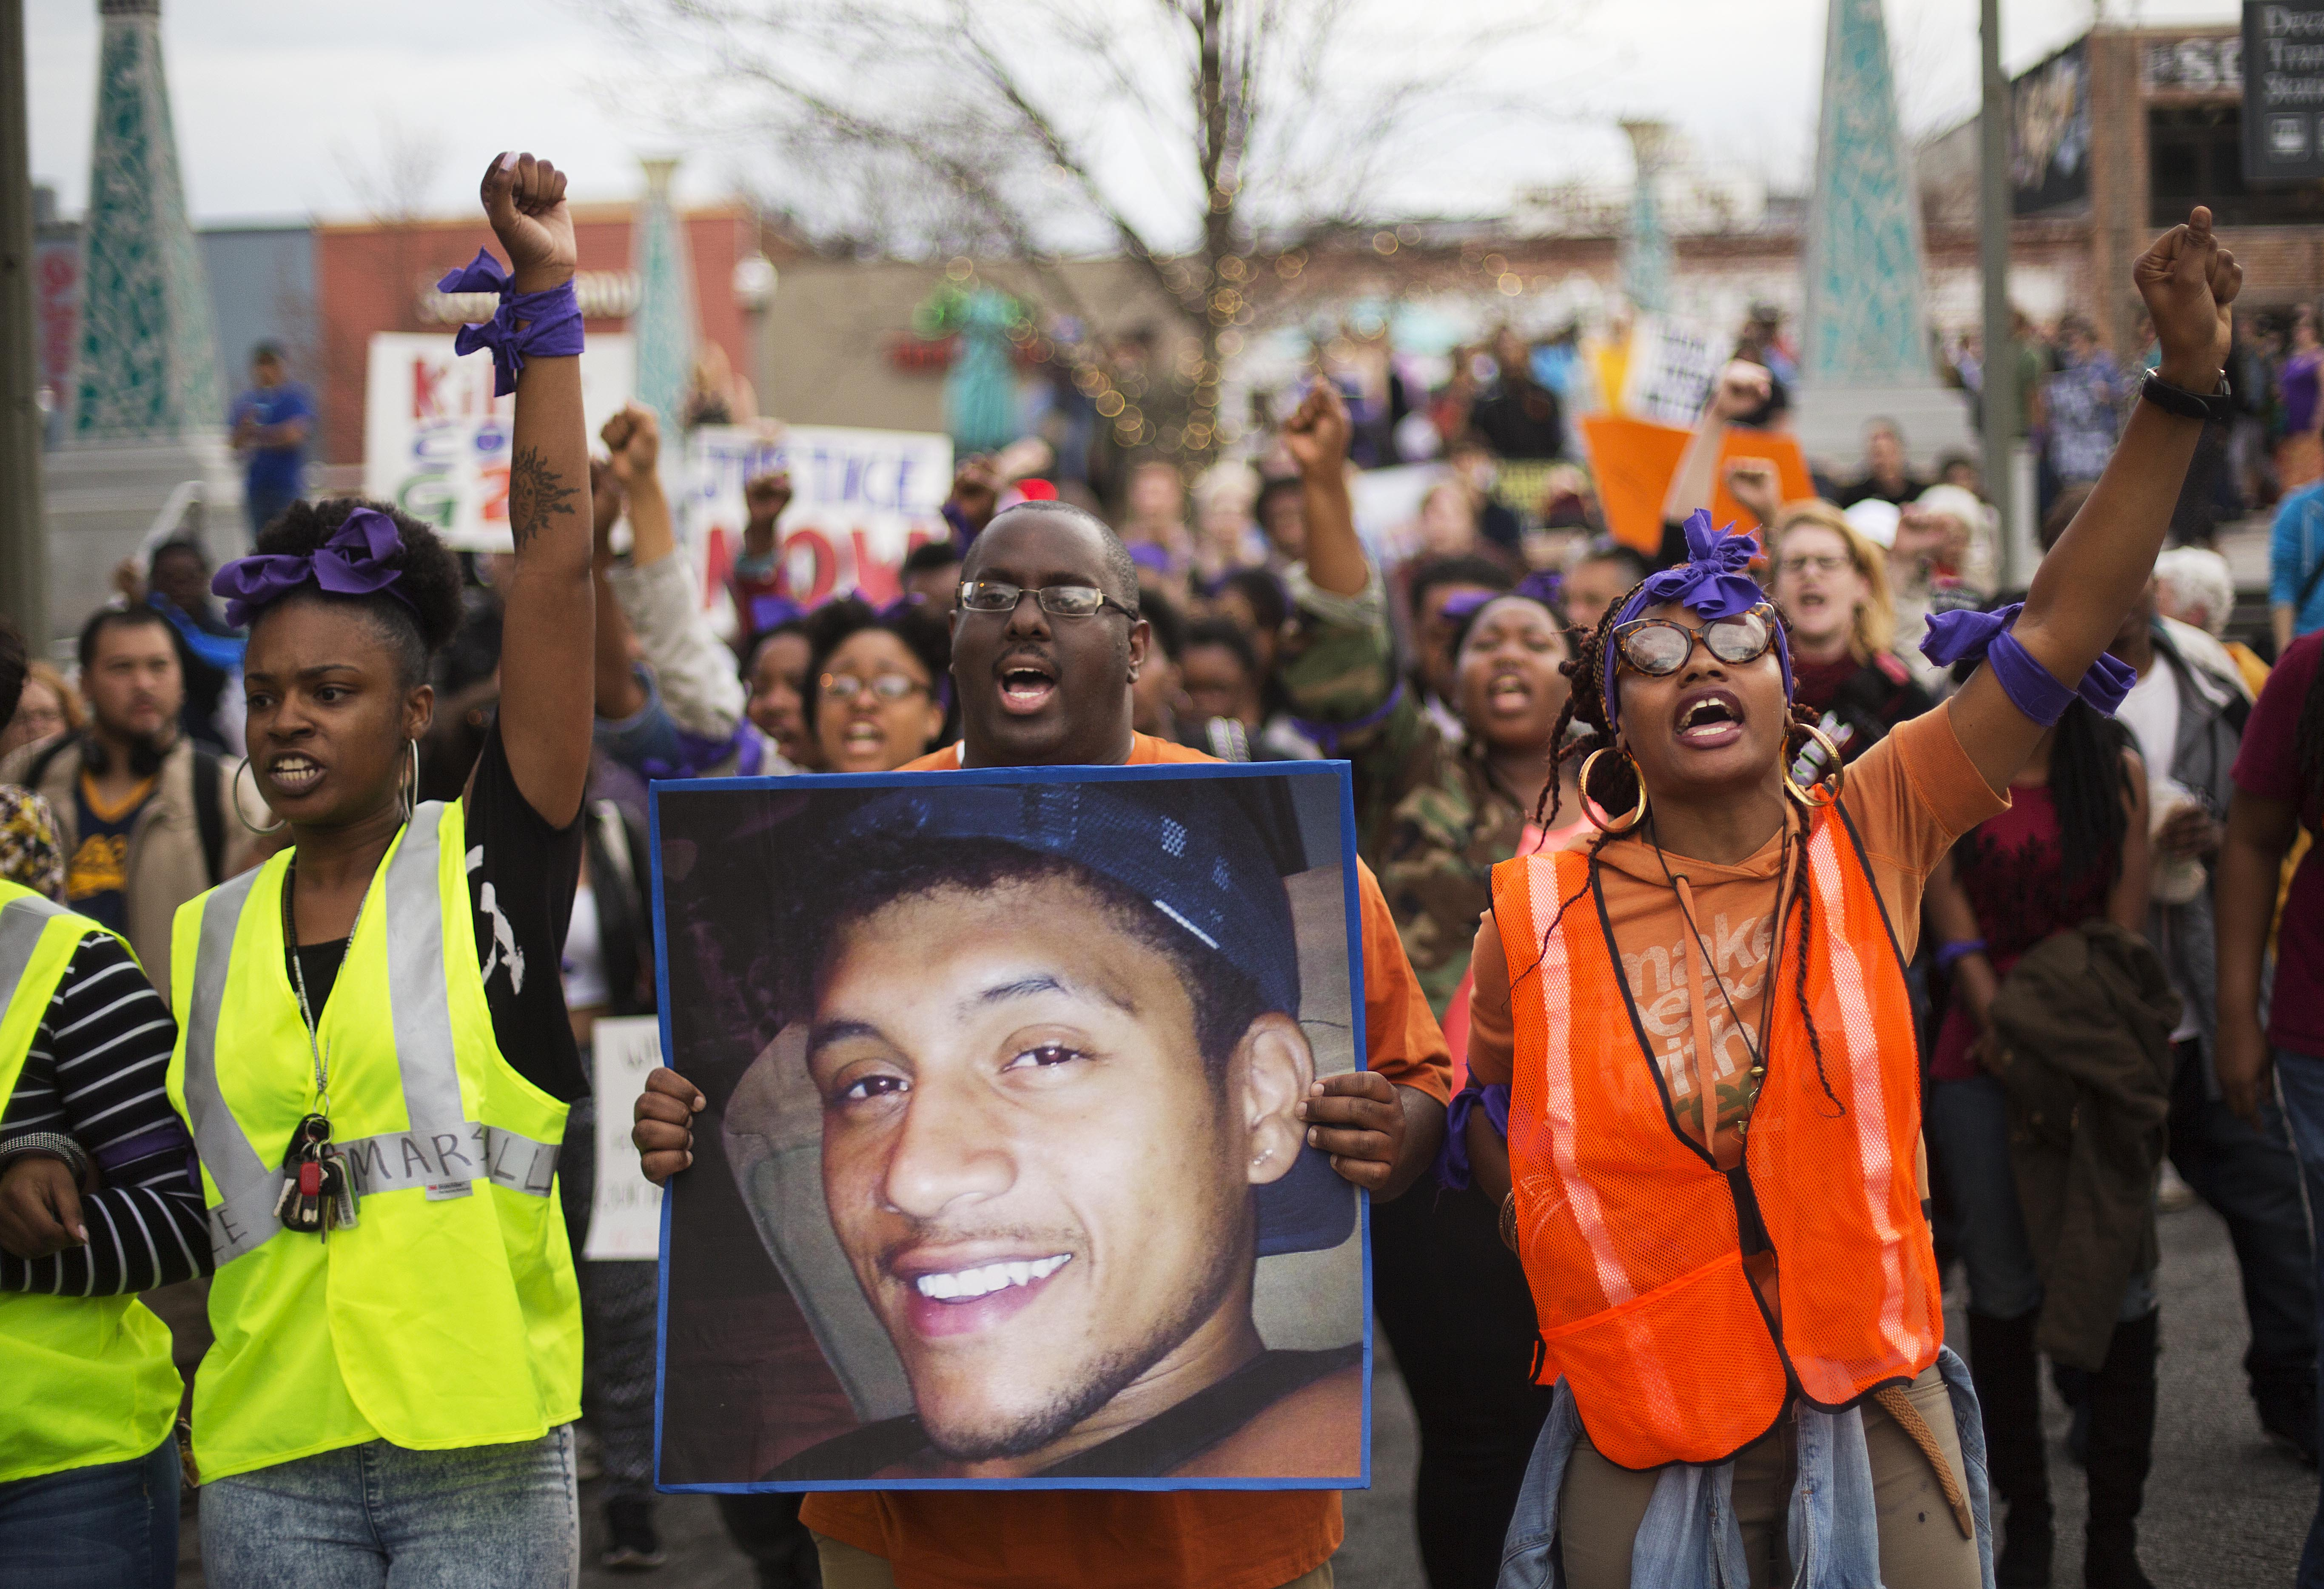 Protesters carry a photo of Anthony Hill while marching through the street demonstrating Hill's shooting death by a police officer in Decatur, Ga. on March 11, 2015.